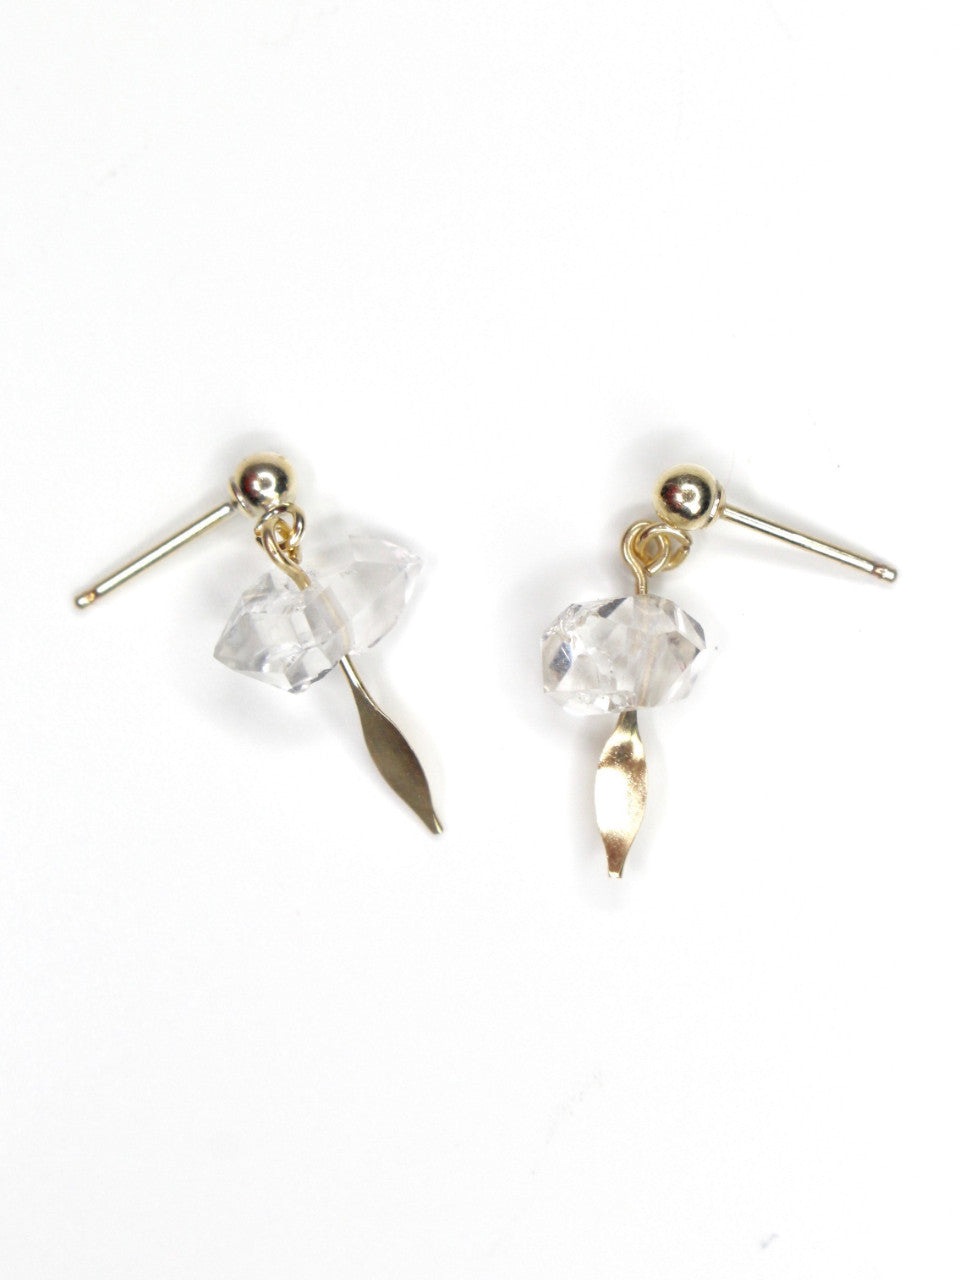 STONE OF ASCENSION • Herkimer Diamond Studs